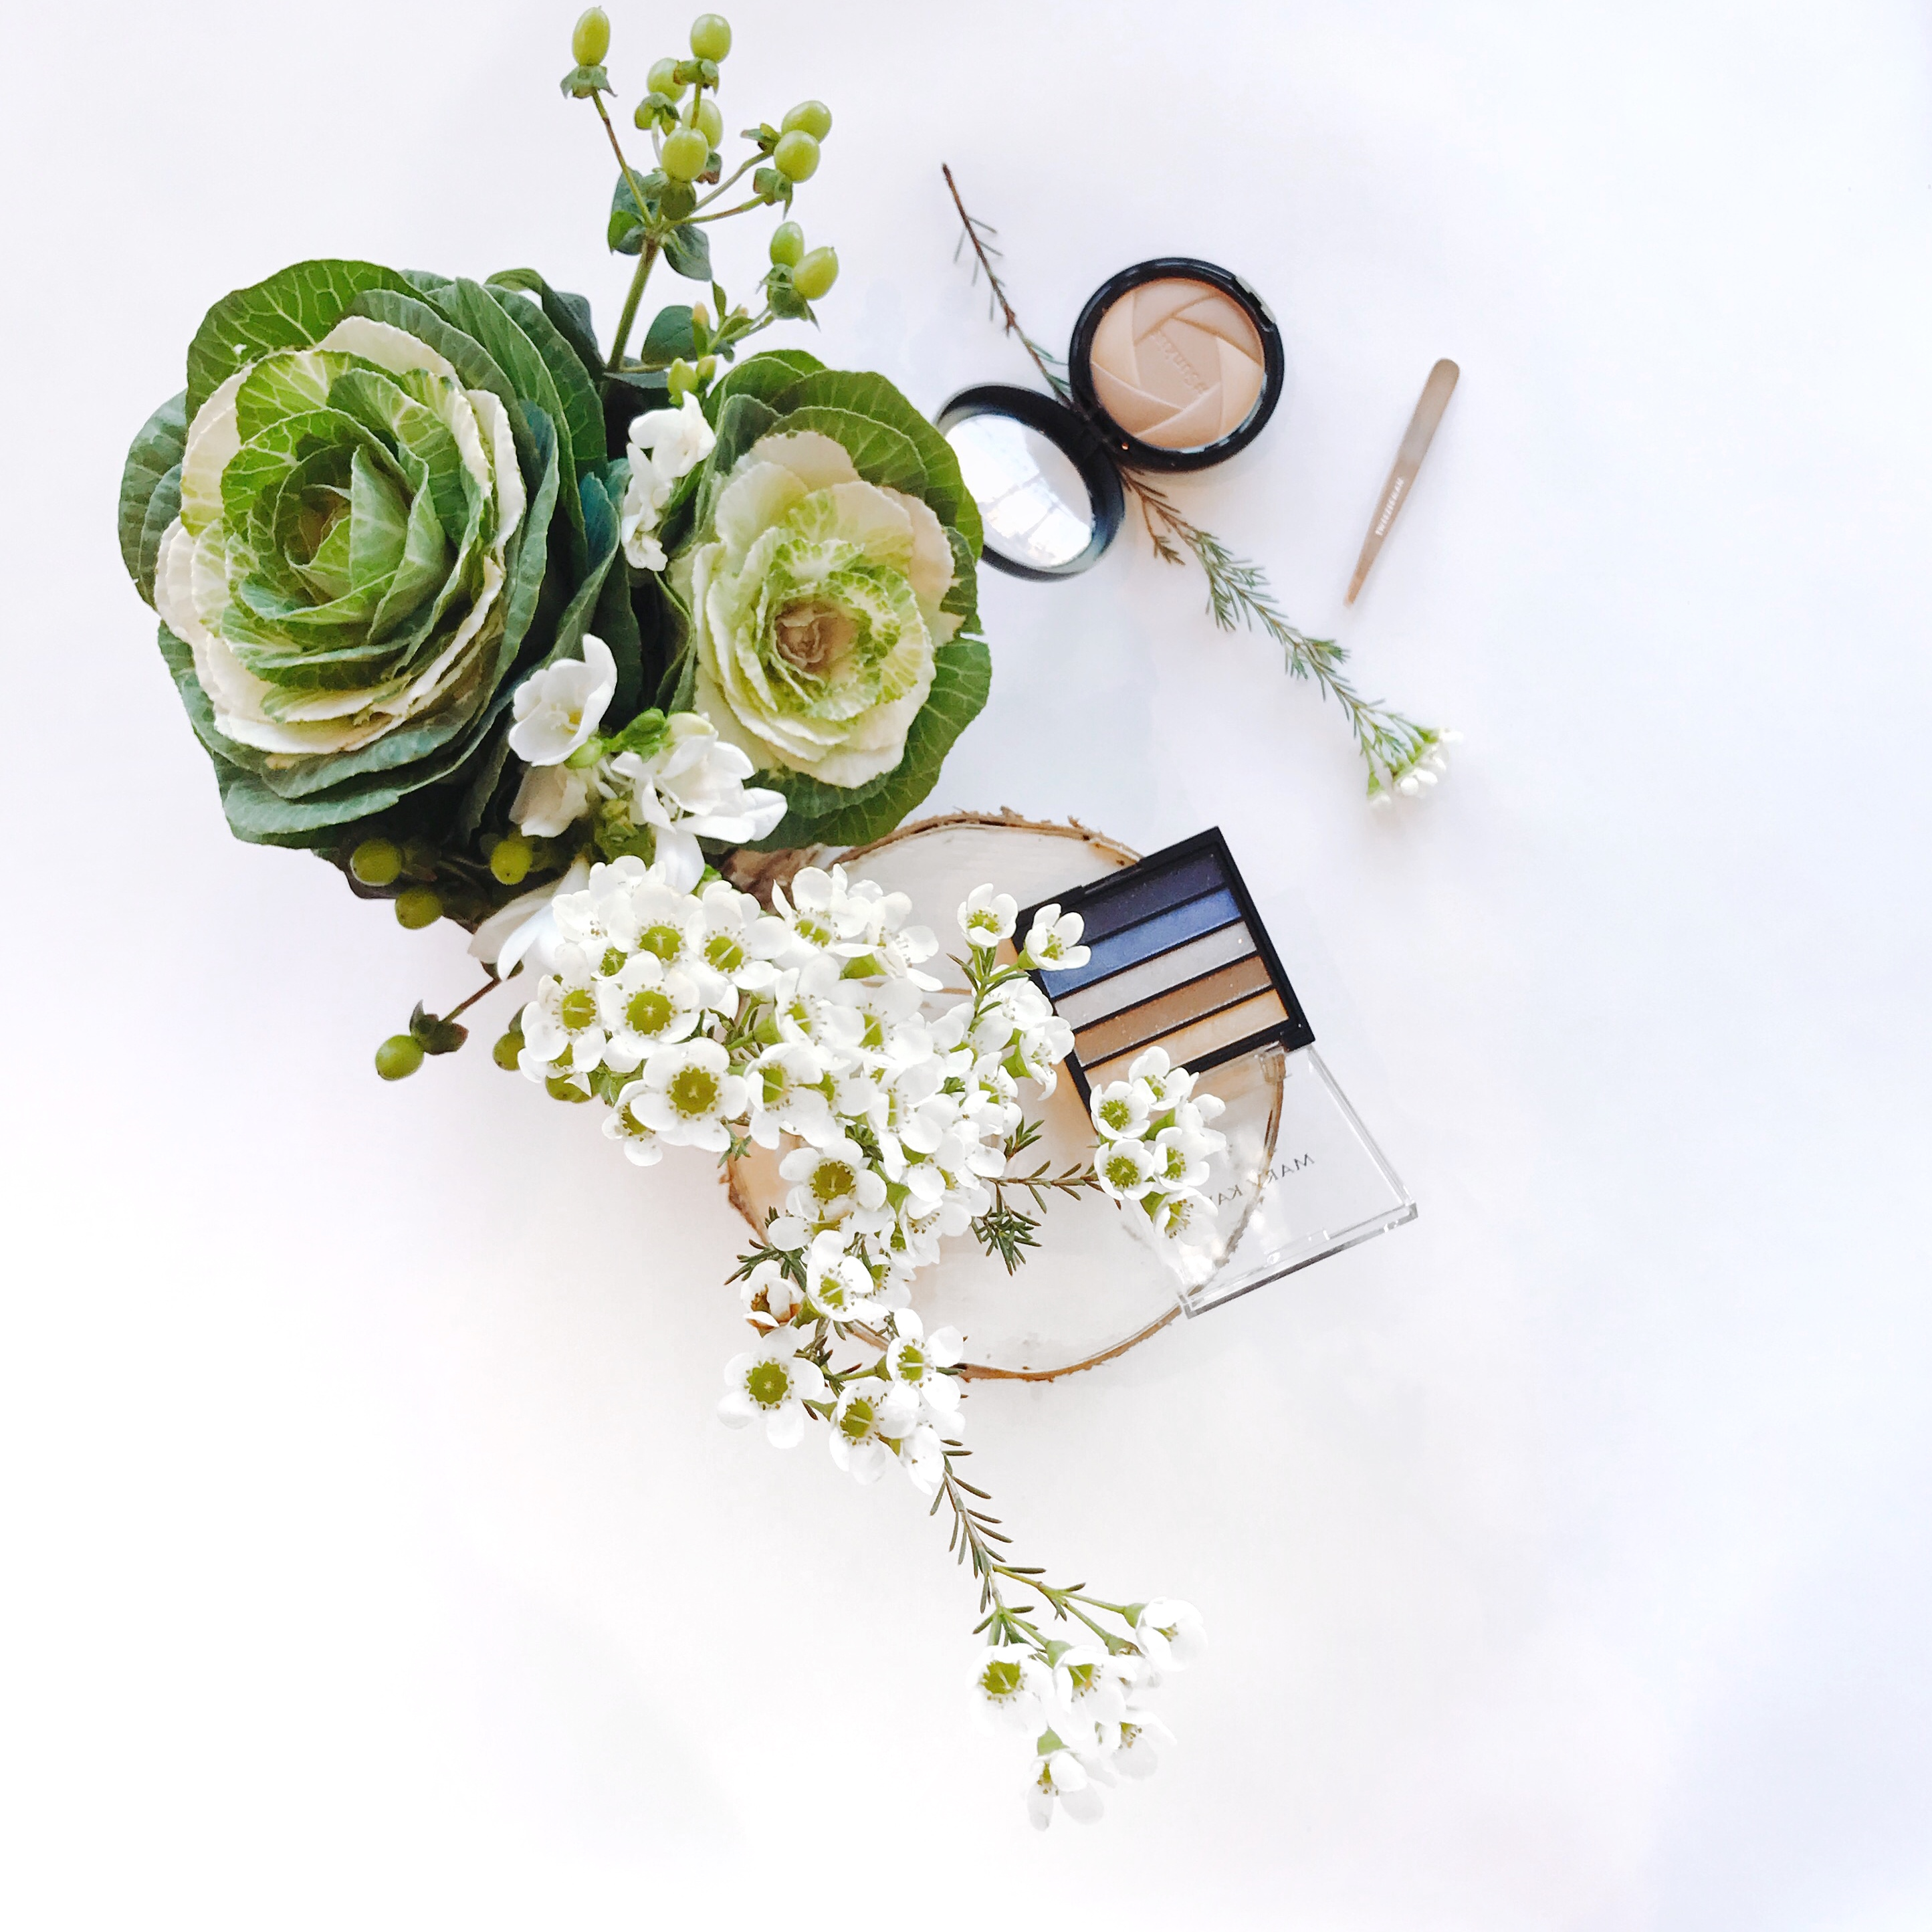 flowers & product flatlay highlights